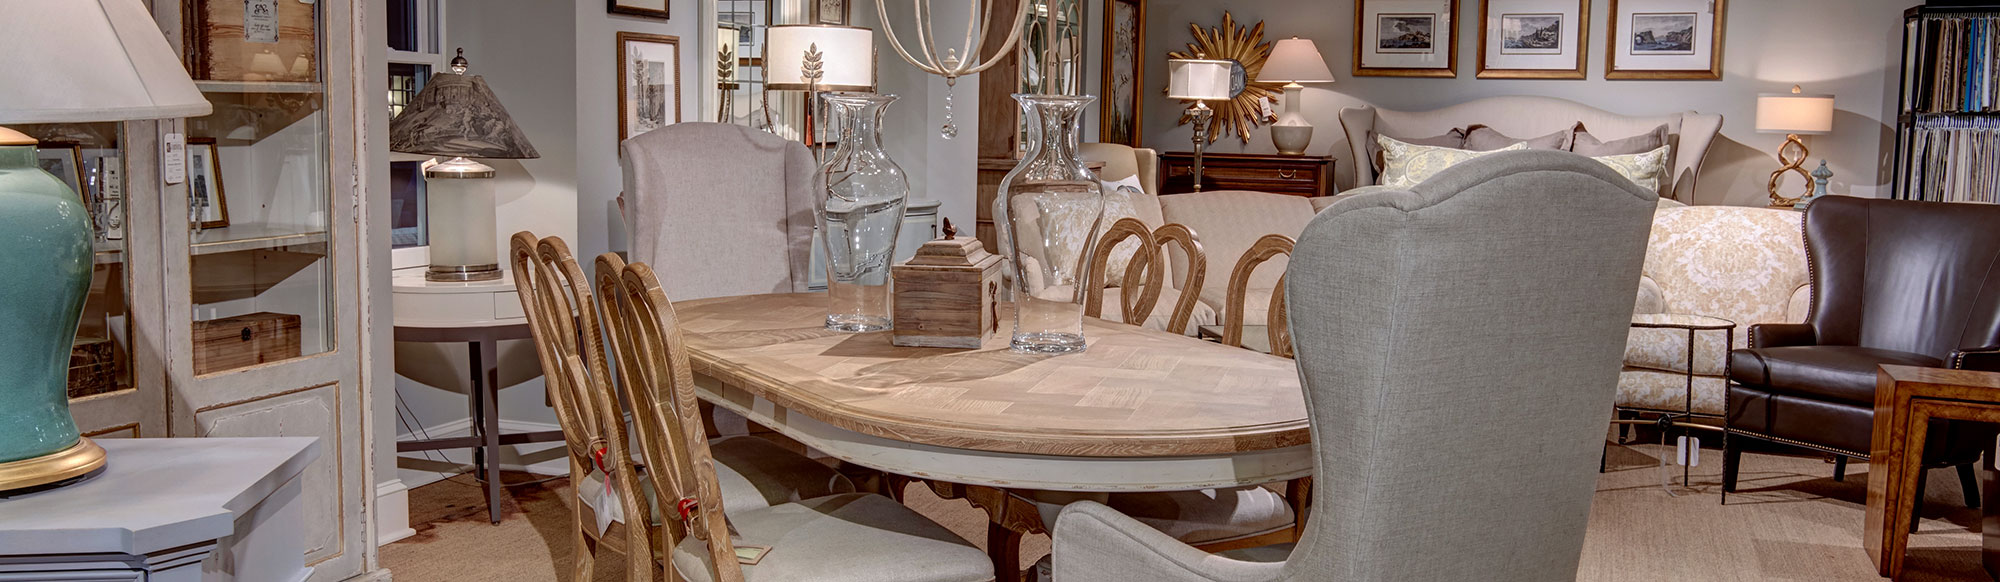 Furniture Stores Williamsburg Vafurniture By Outlet Furniture By Outlet